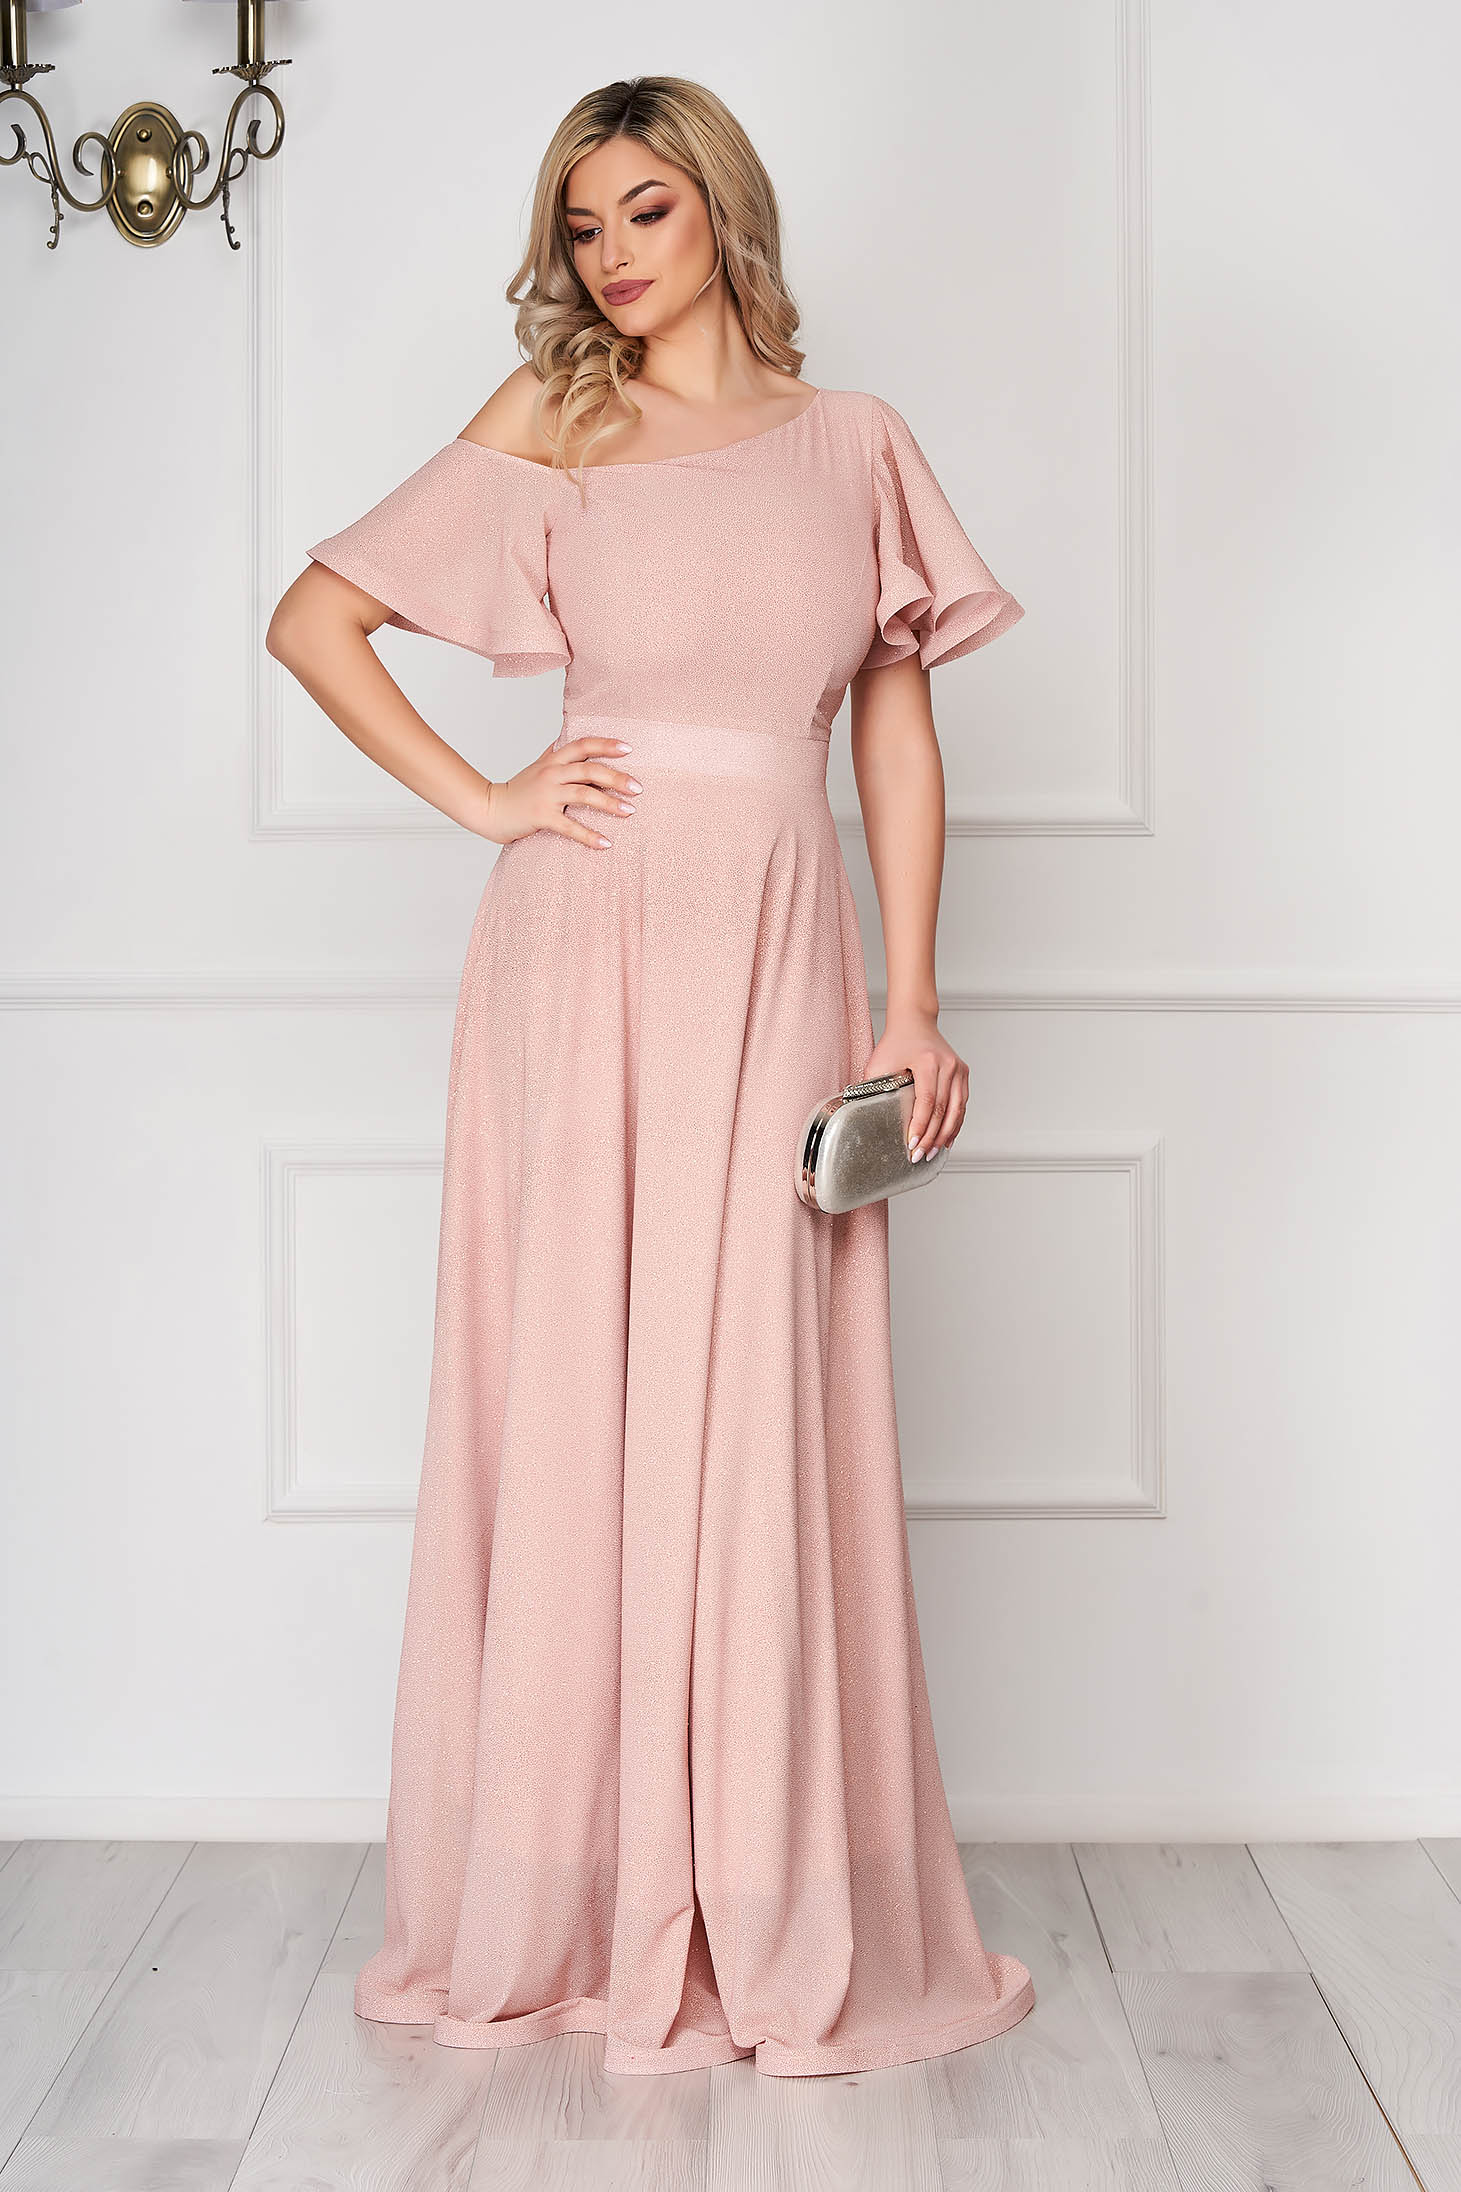 Dress StarShinerS lightpink long occasional cloche from veil fabric one shoulder